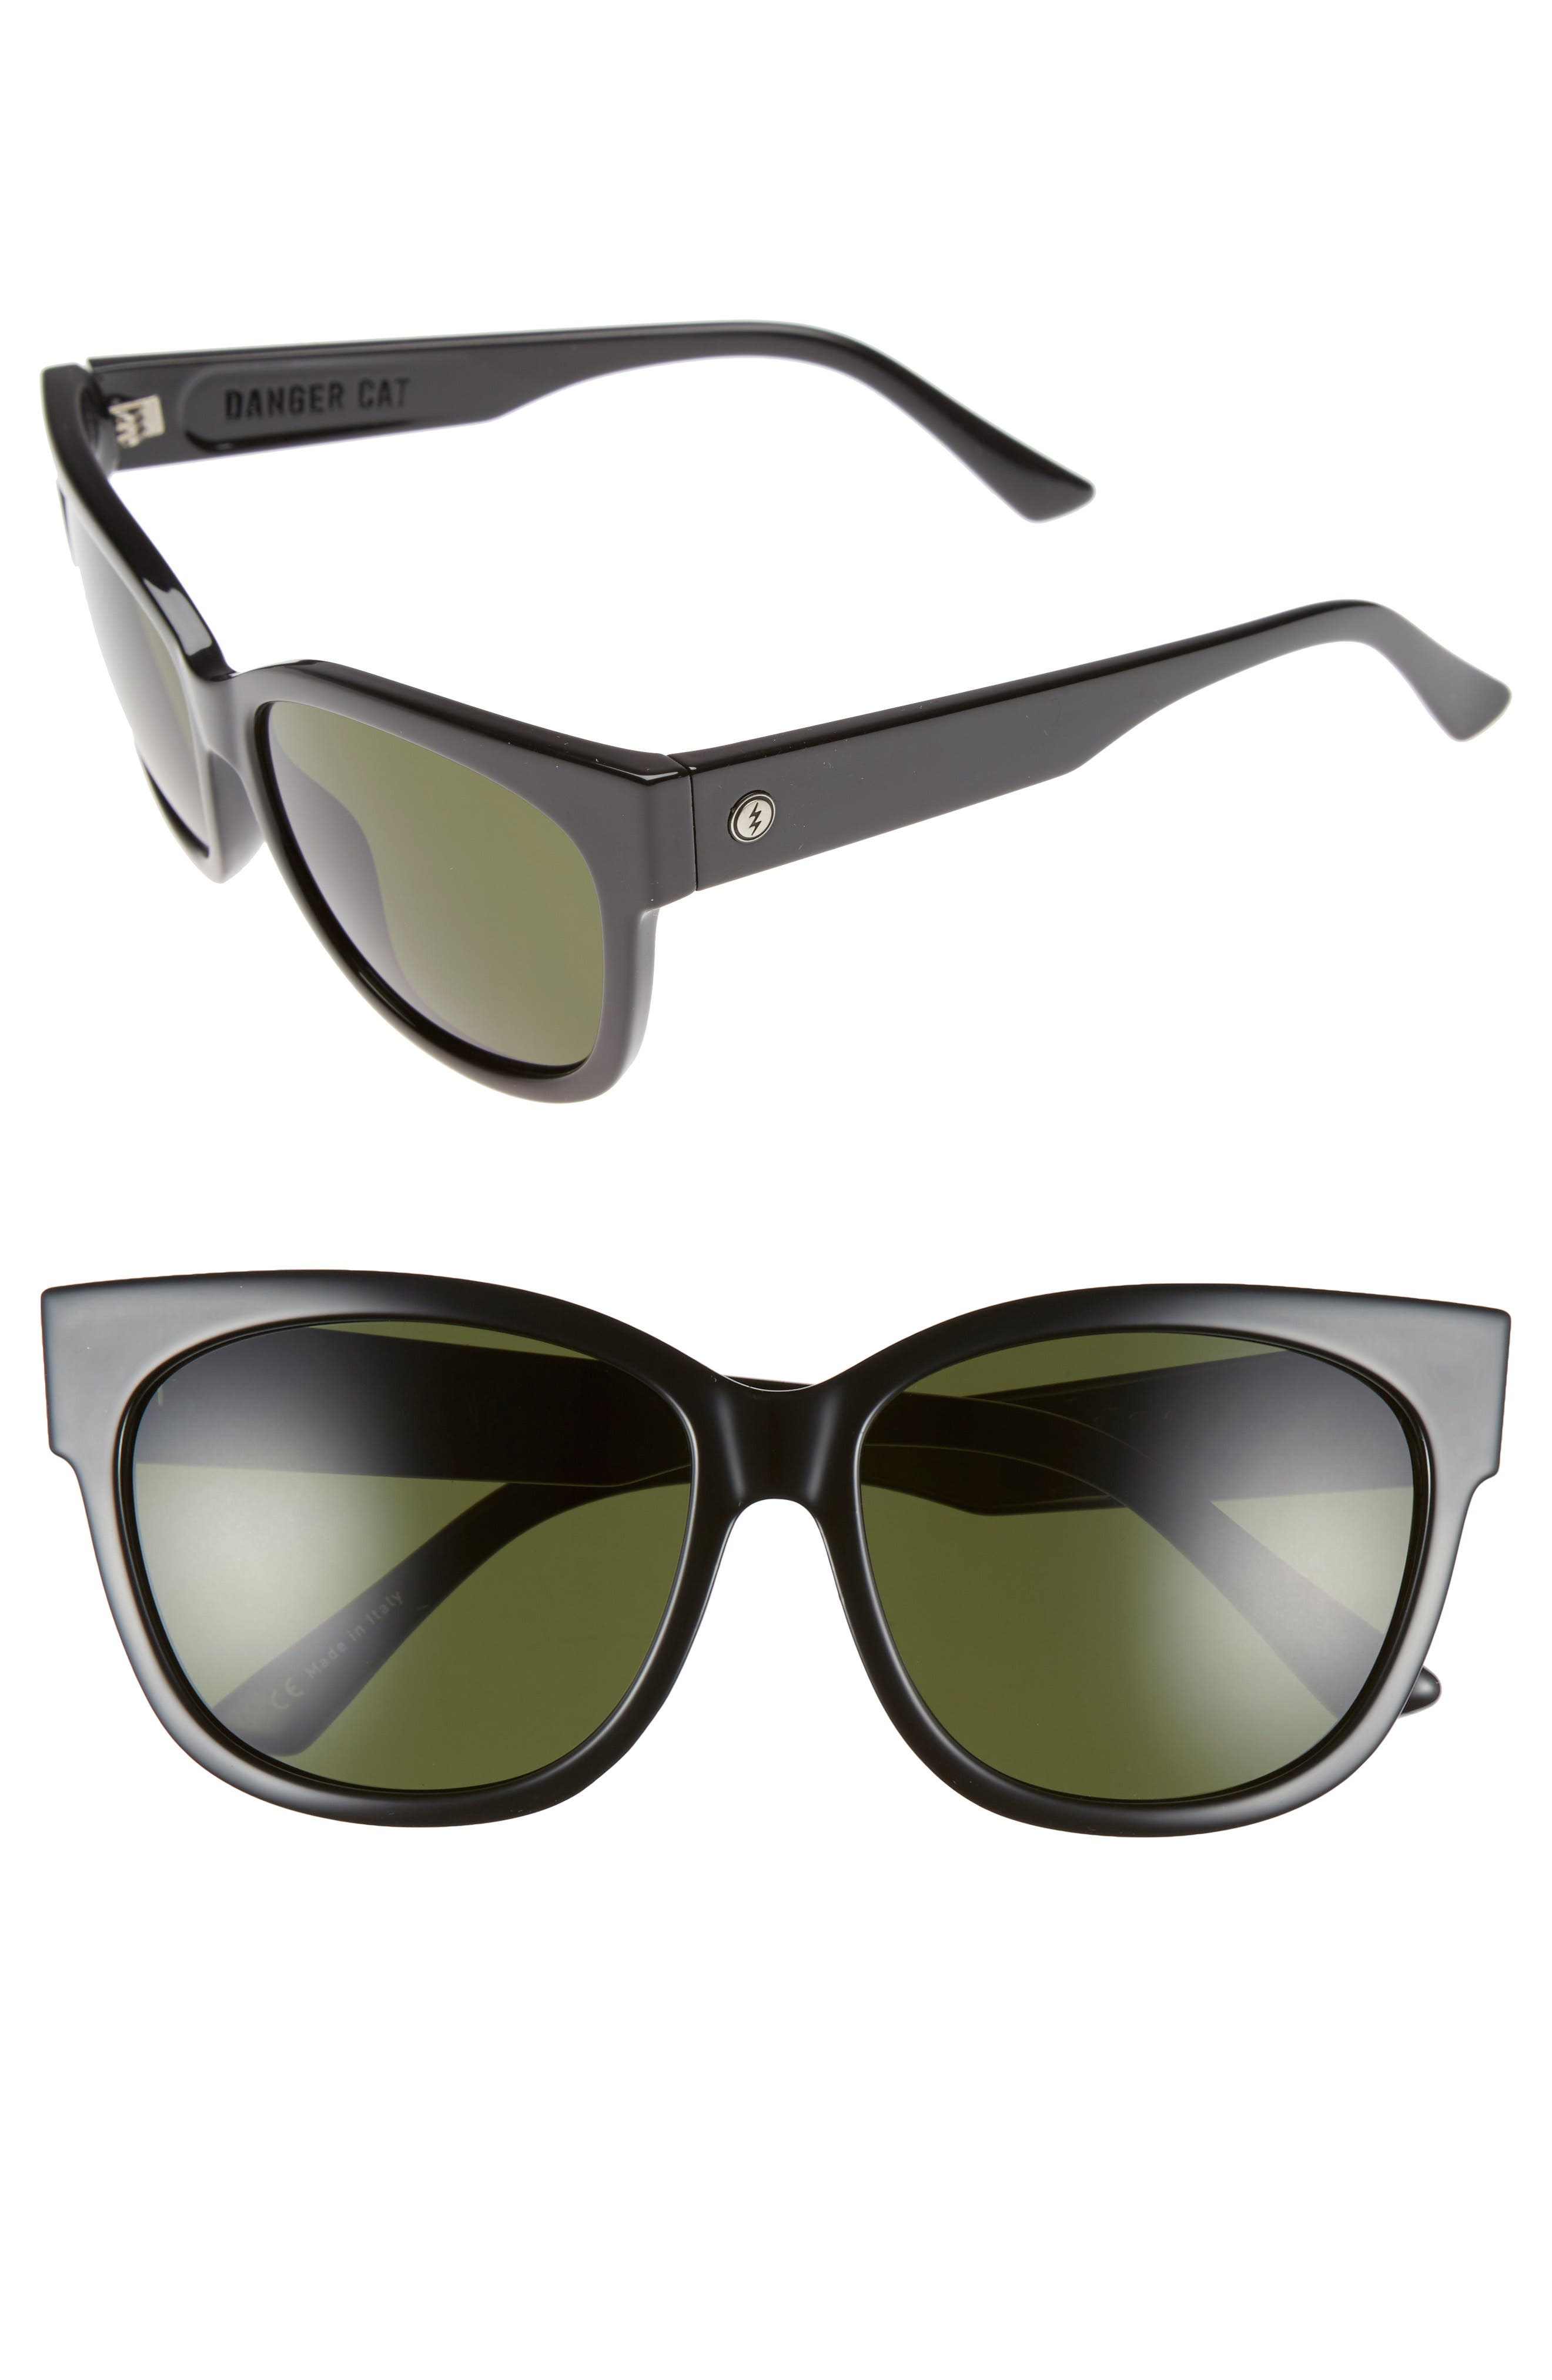 'Danger Cat' 58mm Retro Sunglasses,                             Alternate thumbnail 6, color,